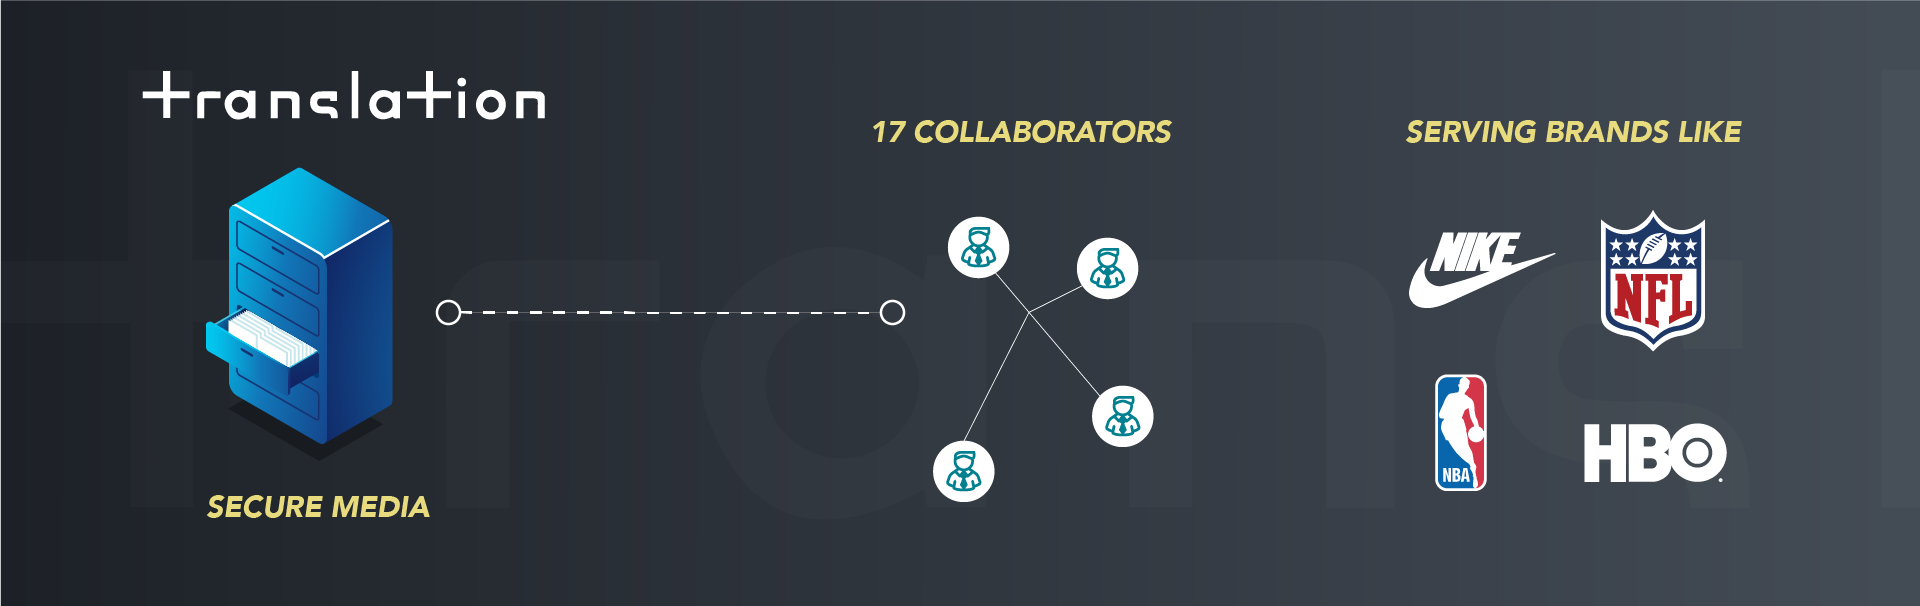 Translation connects their 17 creatives to their media library in the cloud